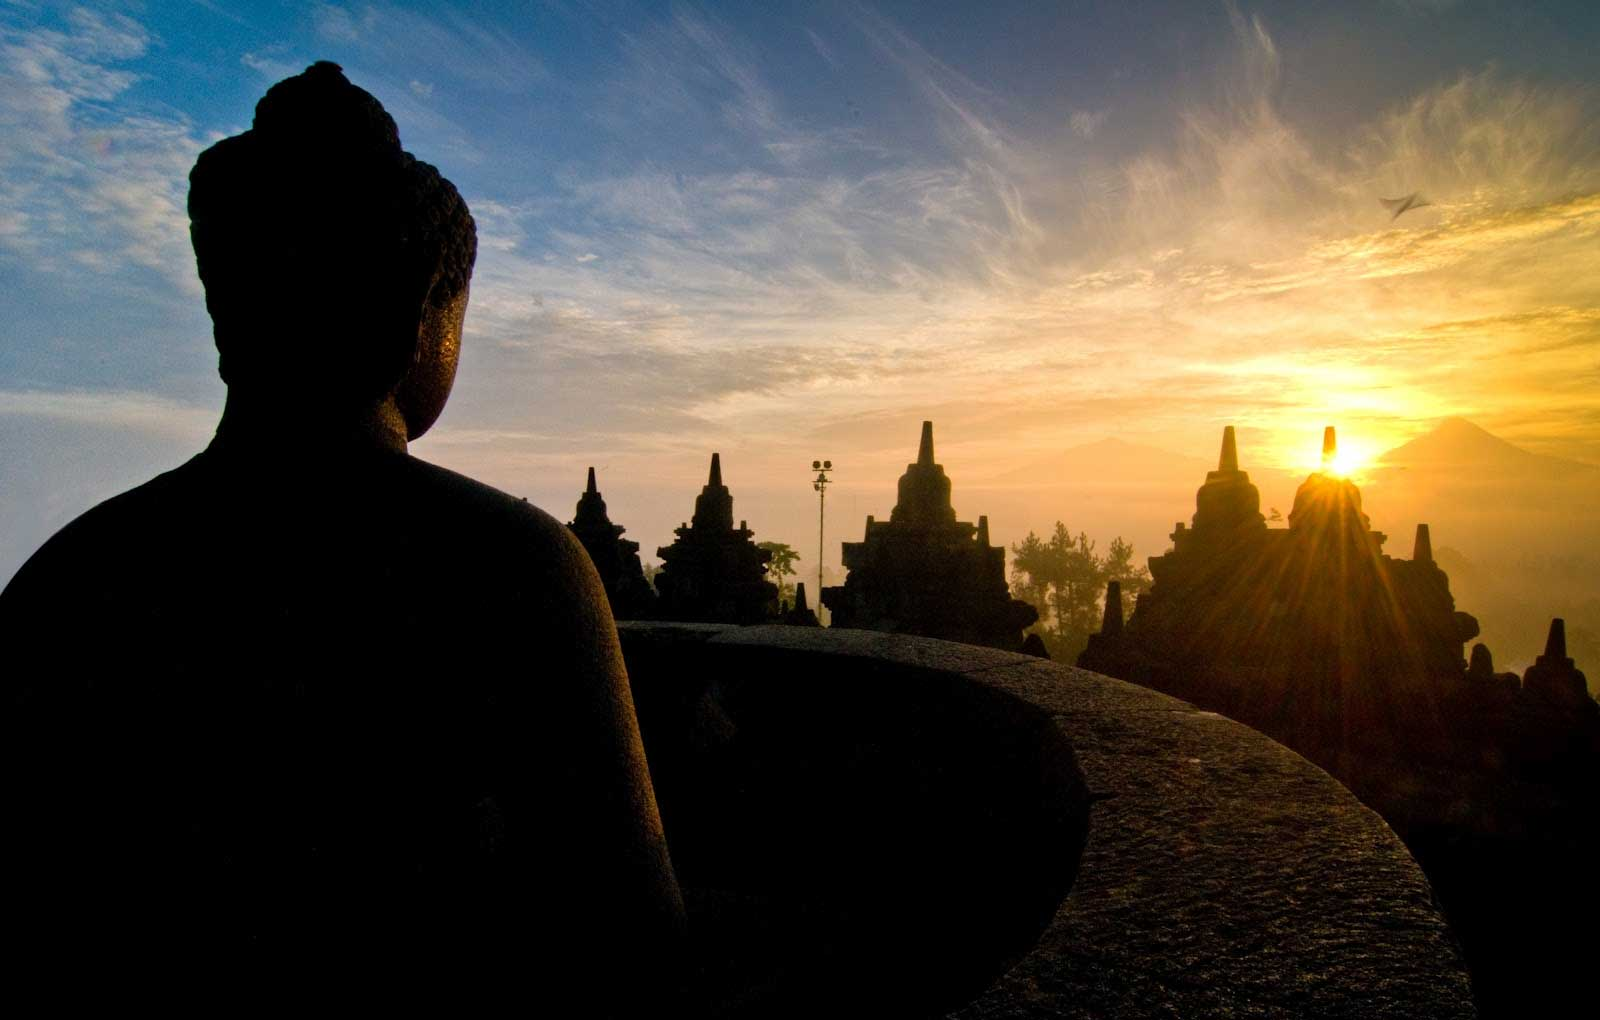 Borobudur Sunrise - Countryside Cycling Tour